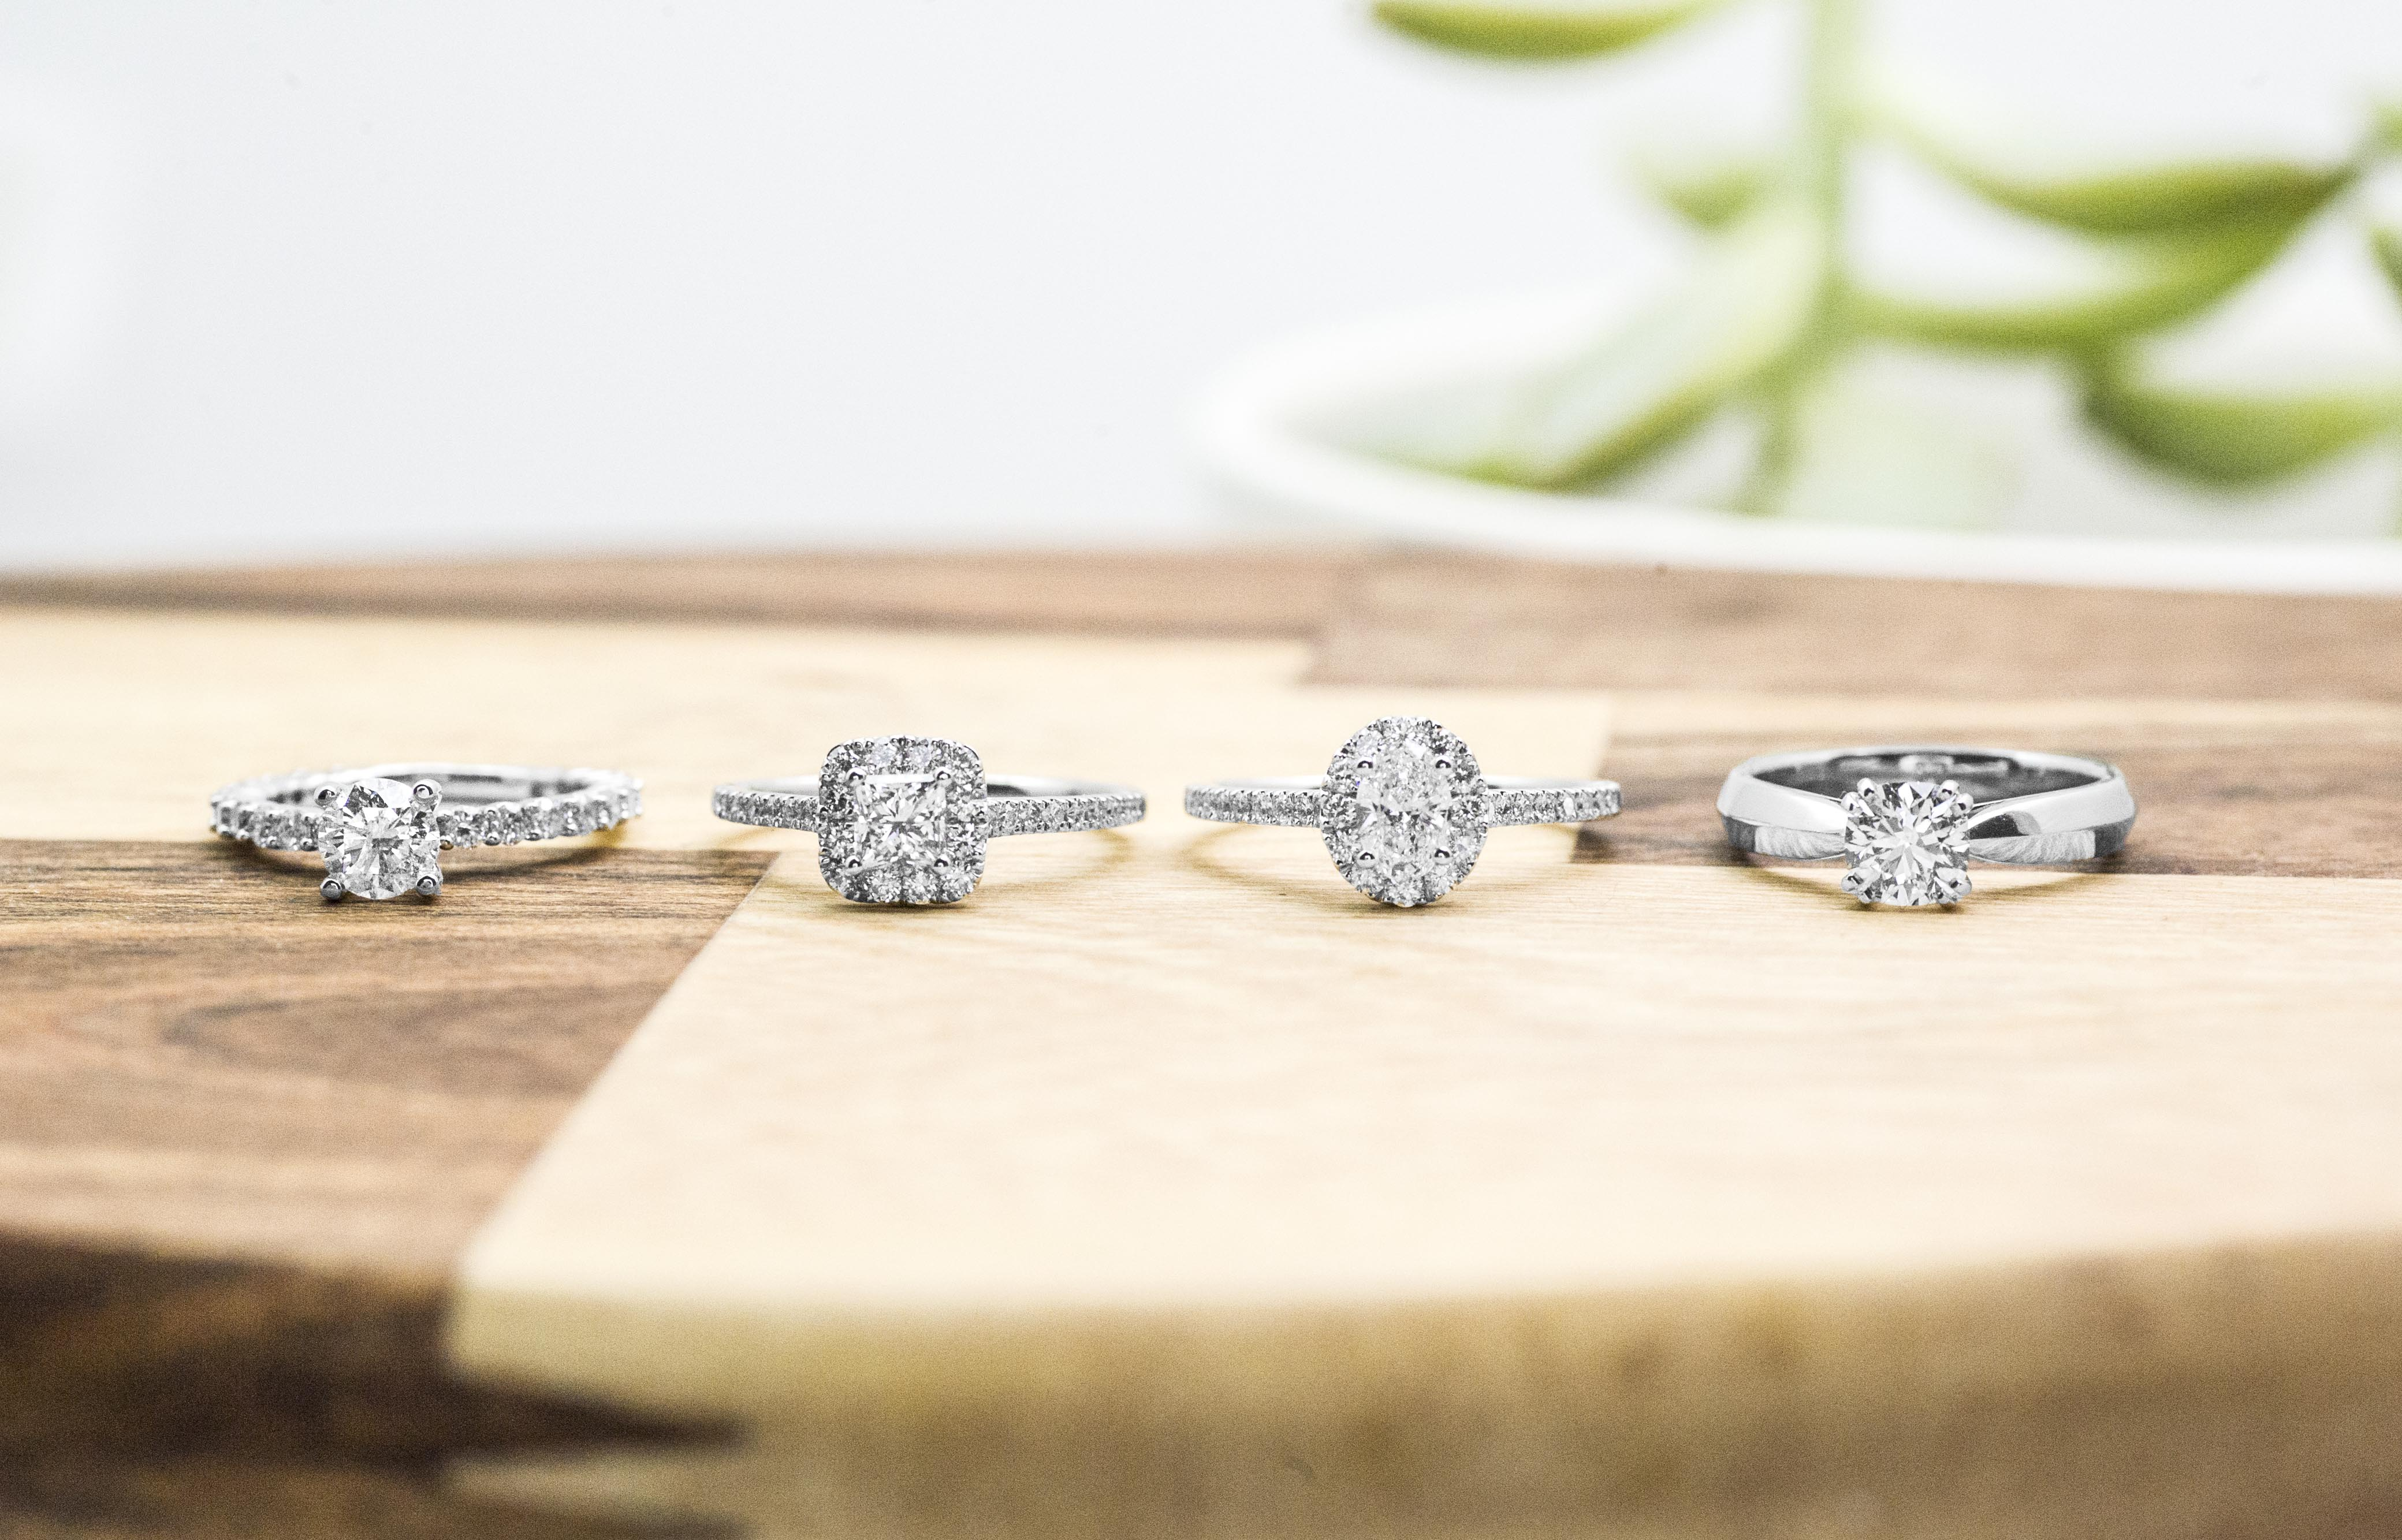 Ring Design Ideas | 6 Quick Custom Engagement Ring Design Tips Leo Hamel Fine Jewelers